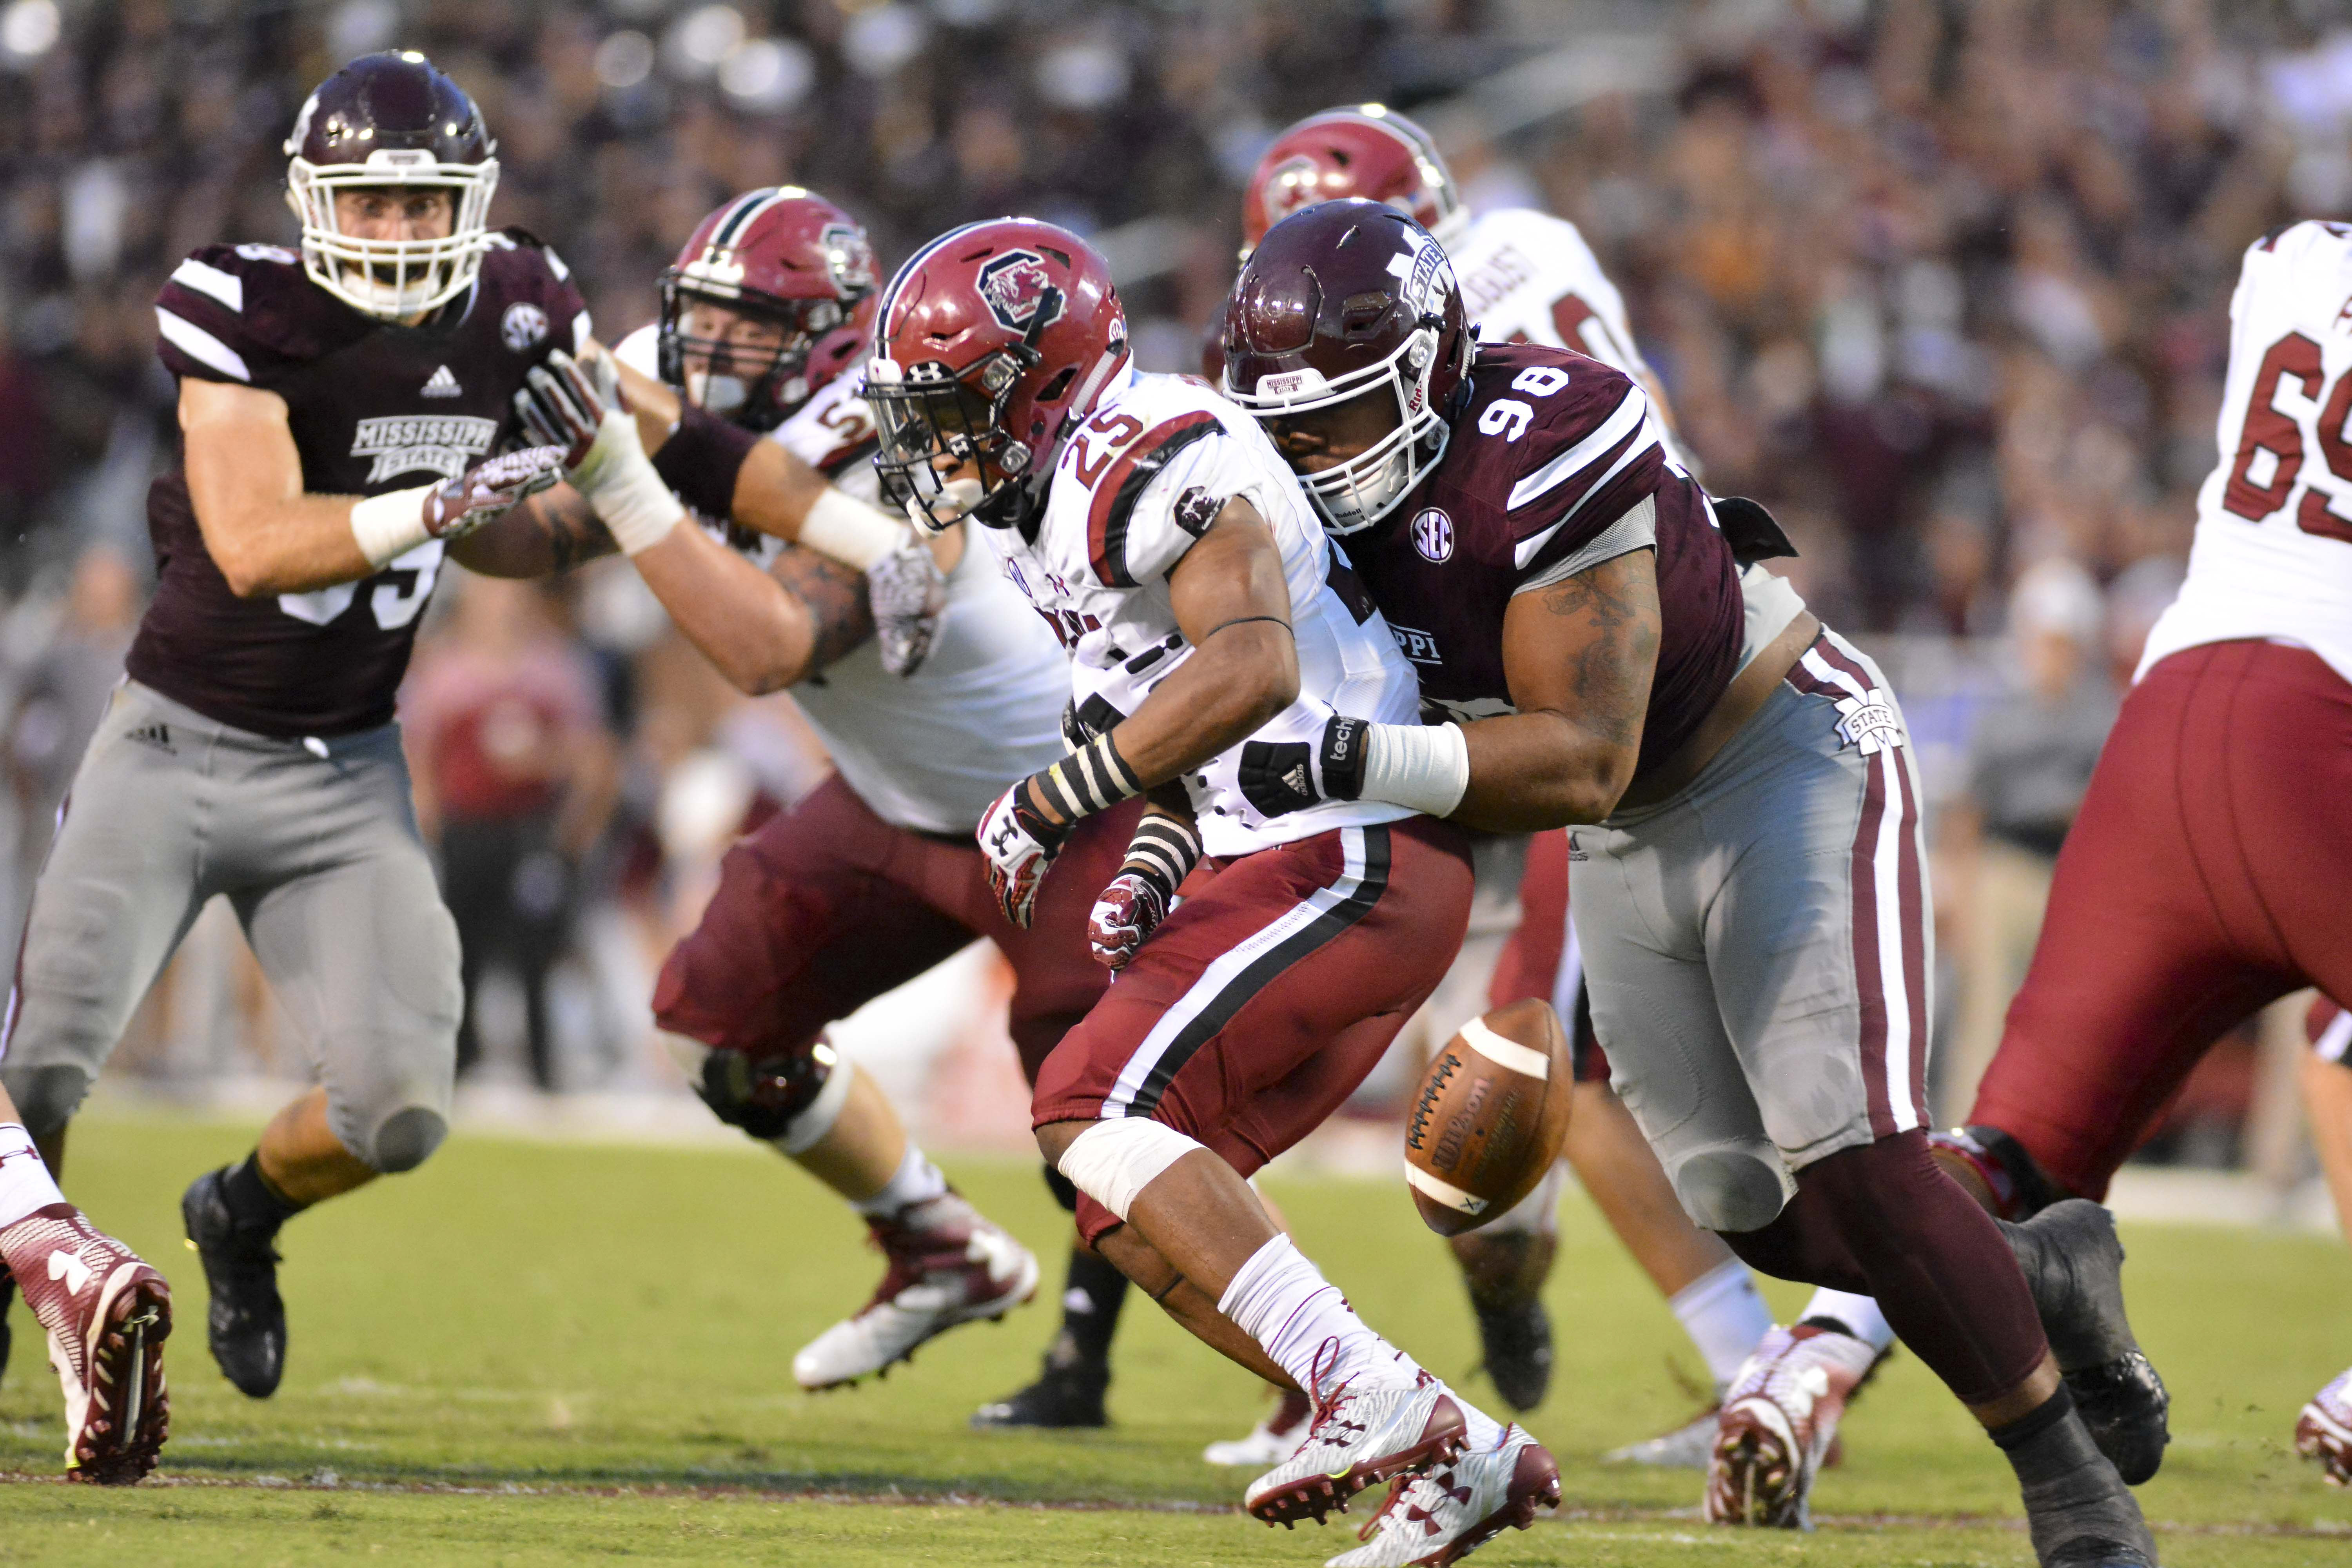 Mississippi St. Bulldogs CL Jeffery Simmons forces a fumble from South Carolina Gamecocks RB A.J. Turner, Sep. 10, 2016.